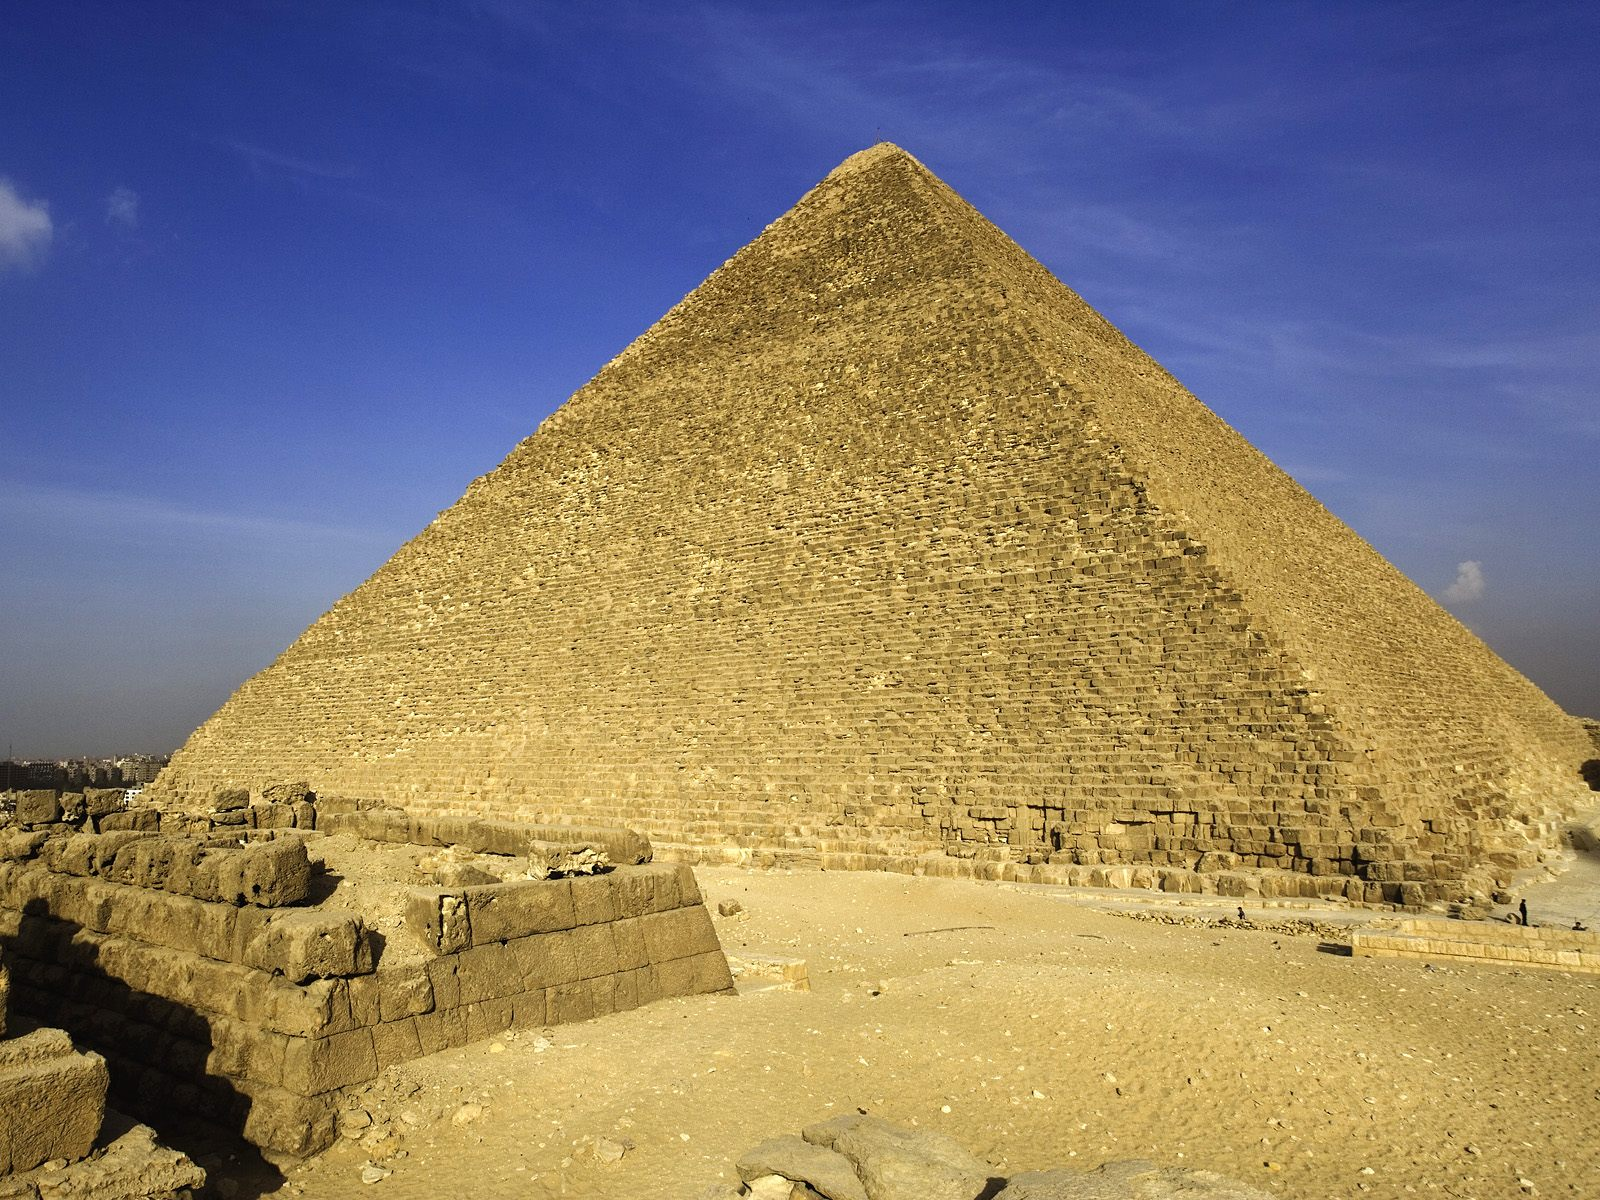 The Great Pyramid Giza